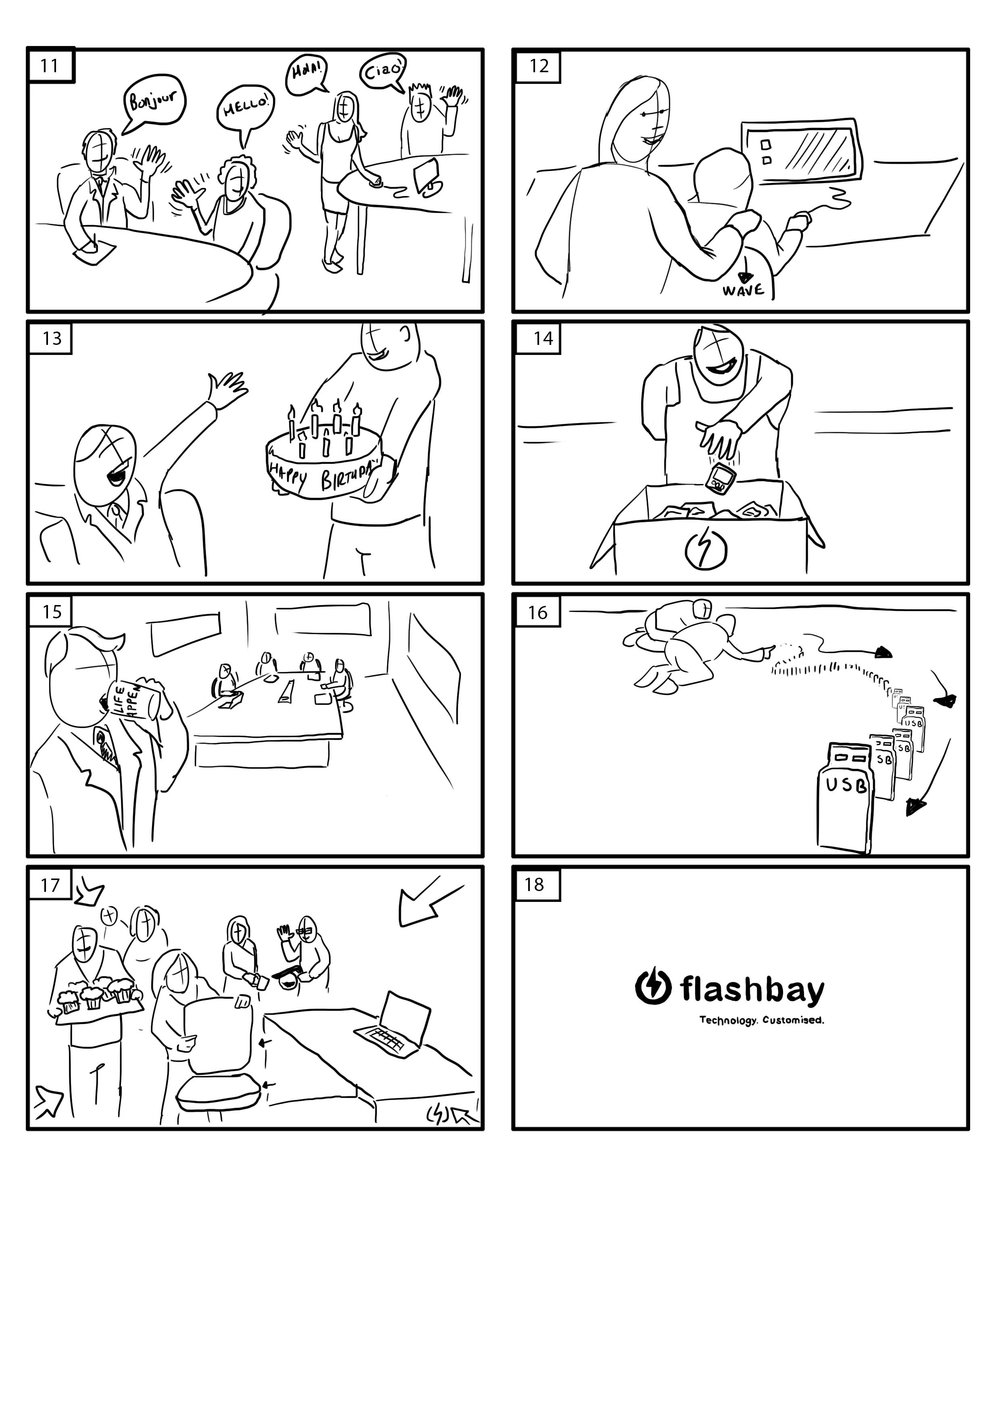 Flashbay storyboard 11-18.jpg